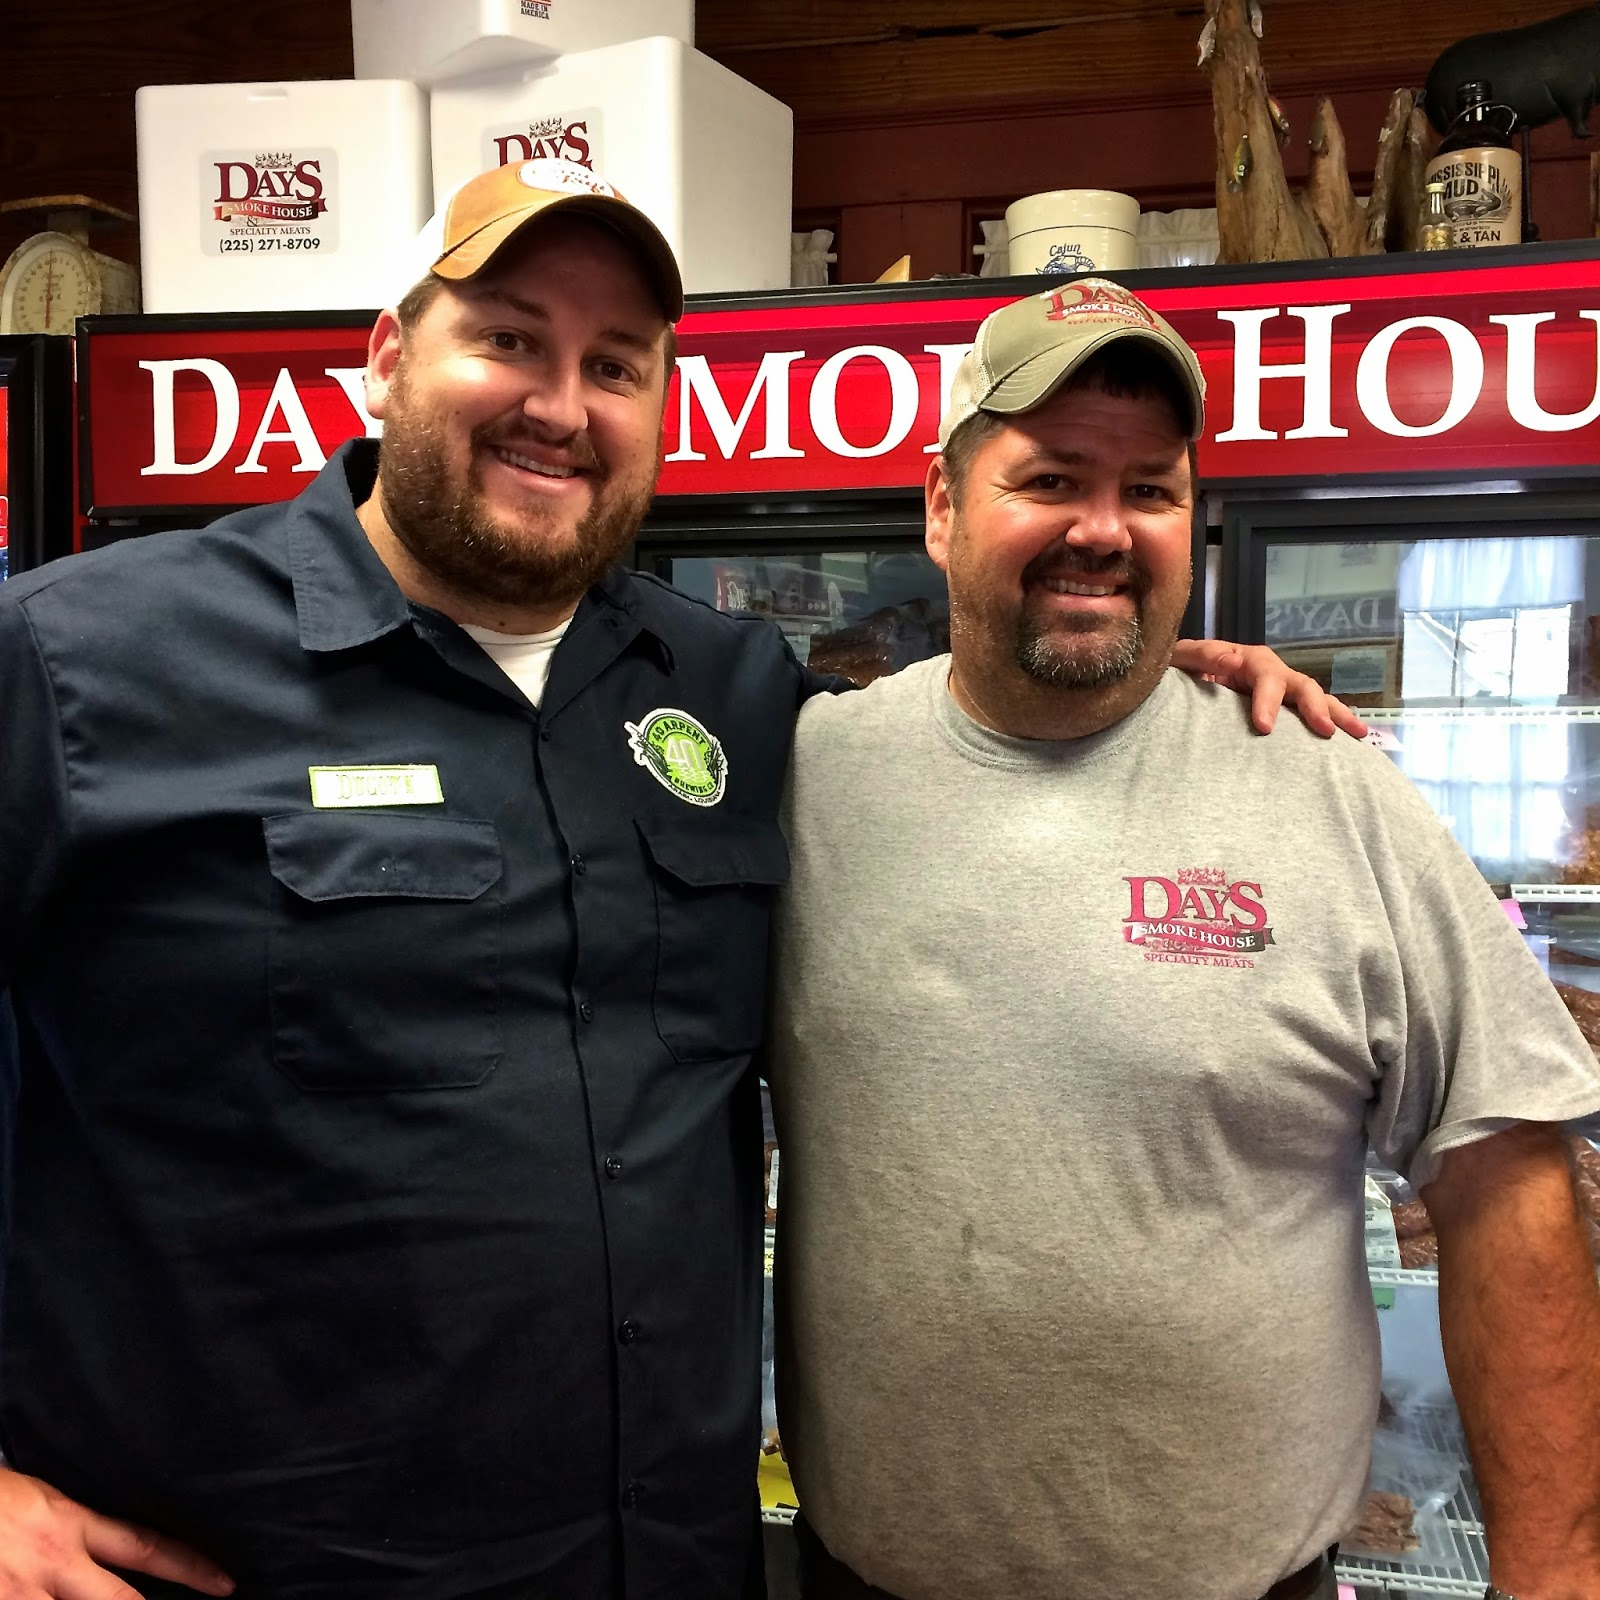 Owner Kendall Day and I at Day's Smokehouse in Denham Springs